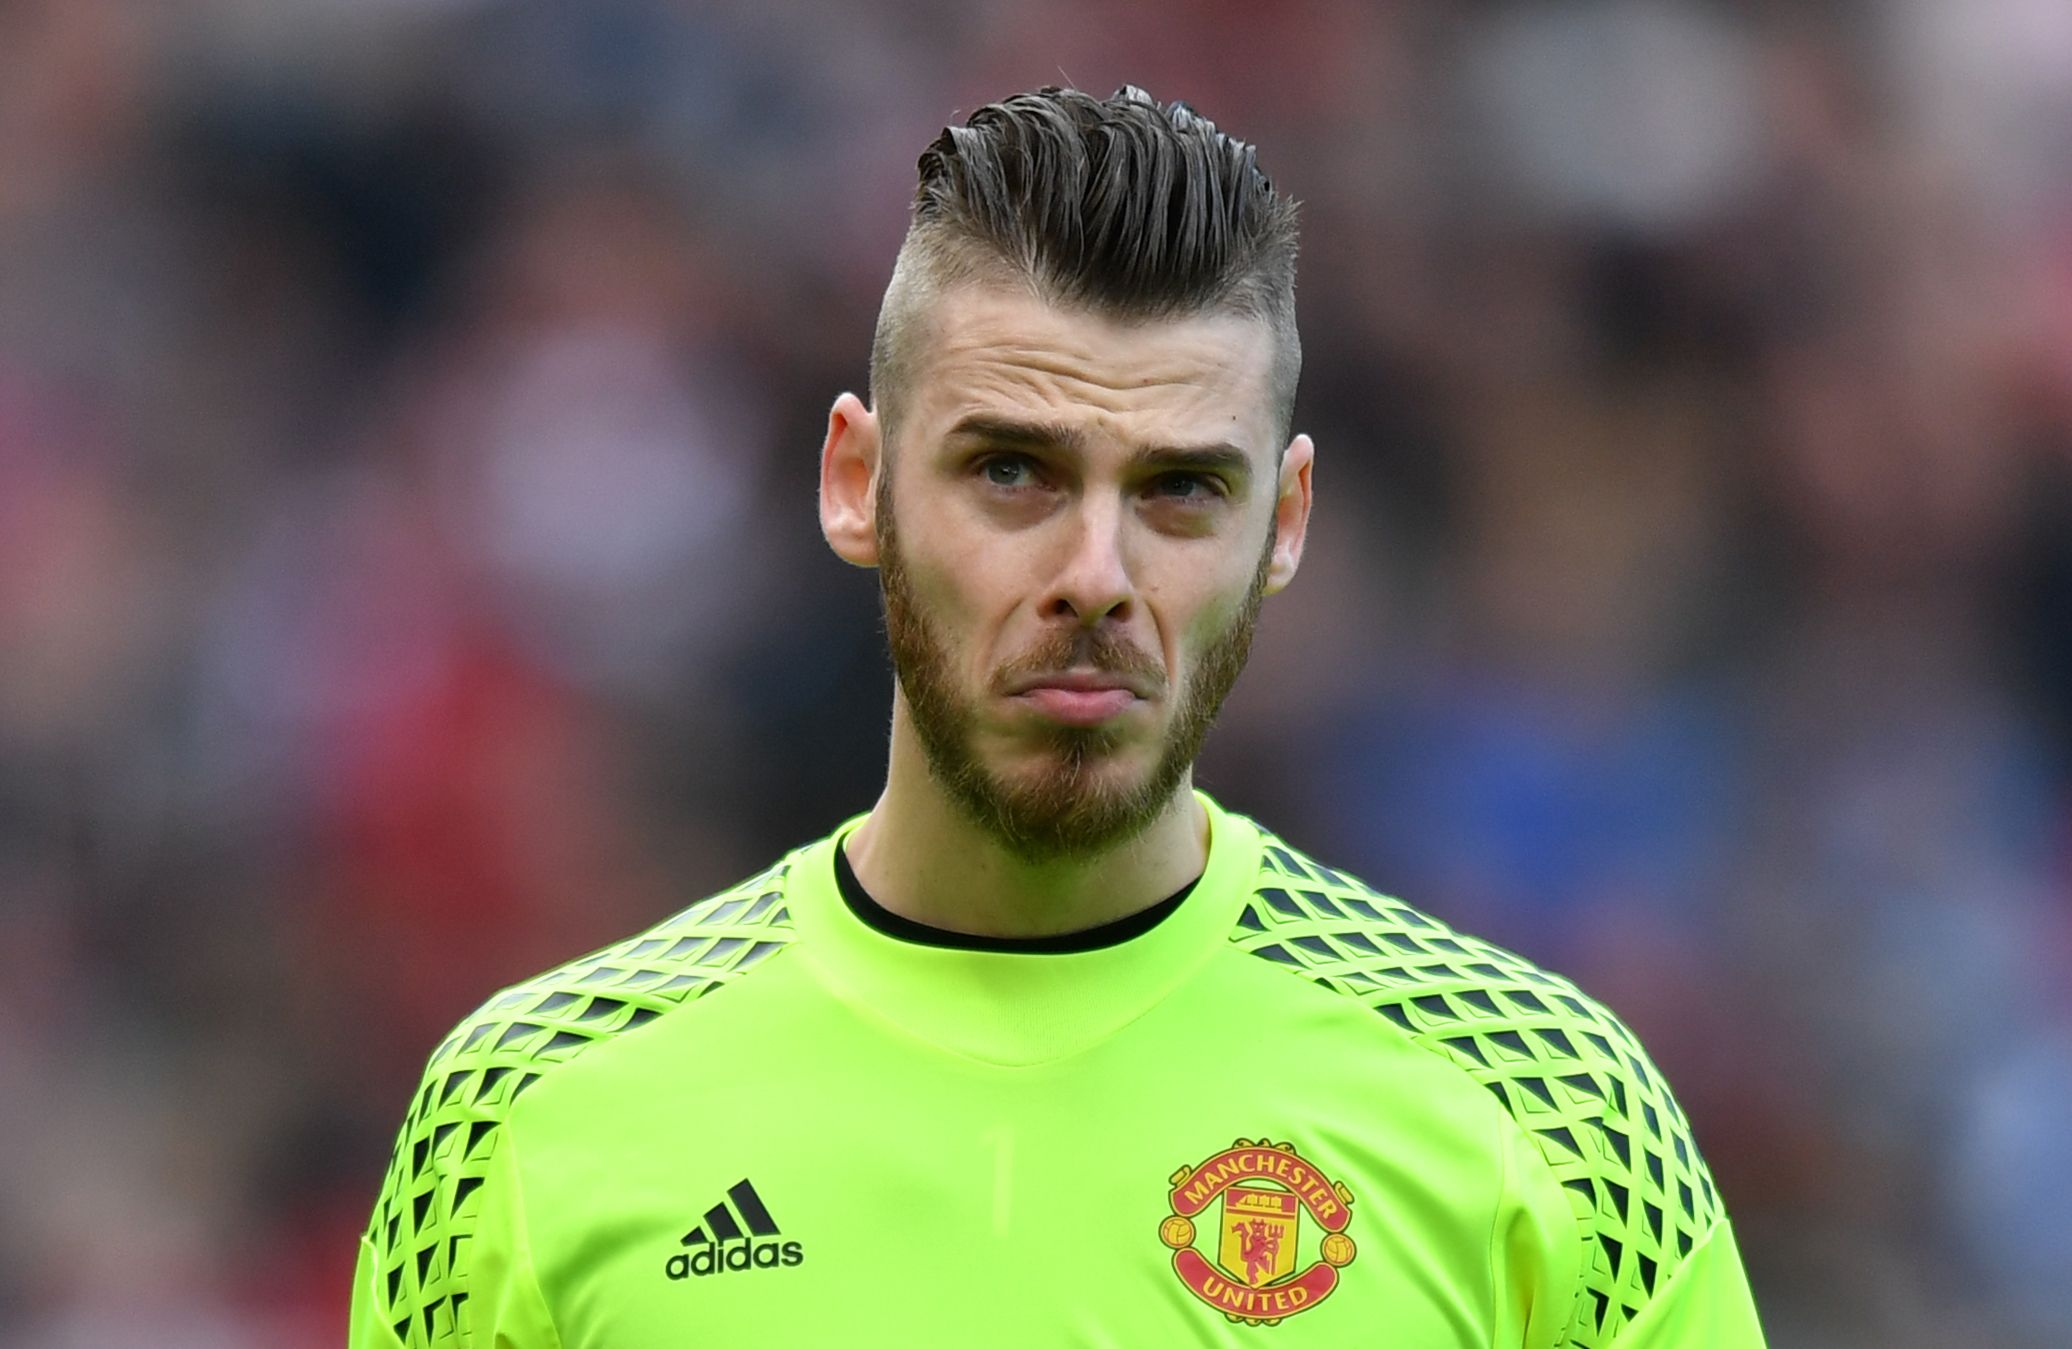 Manchester United goalkeeper David De Gea at The Riverside Stadium, Middlesbrough, England, March 19.